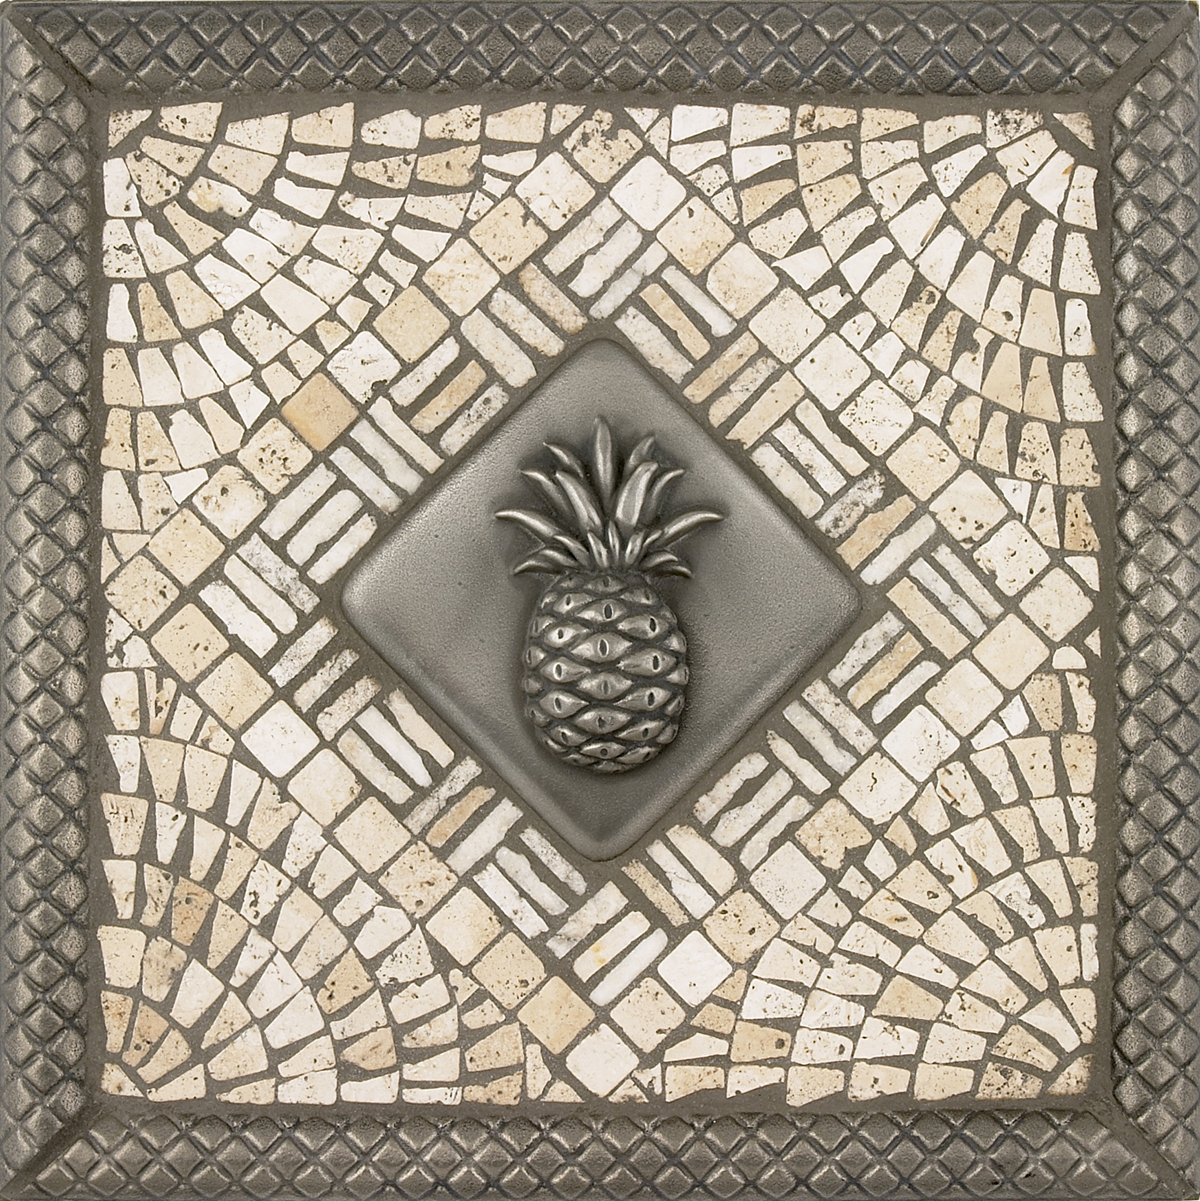 Metal pineapple mosaic tile backsplash medallion 12 inches pineapple mosaic tile backsplash medallion 12 inches dailygadgetfo Choice Image